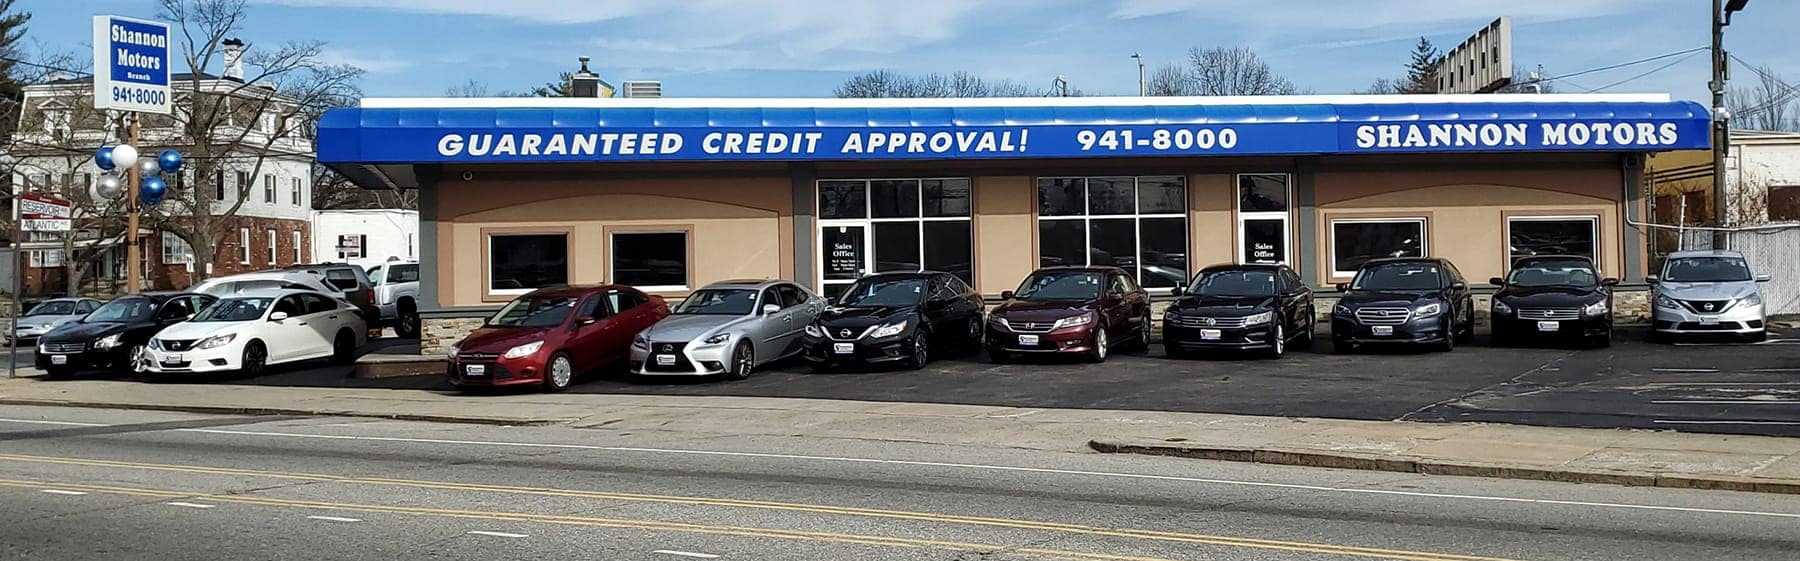 Shannon Motors Providence Location